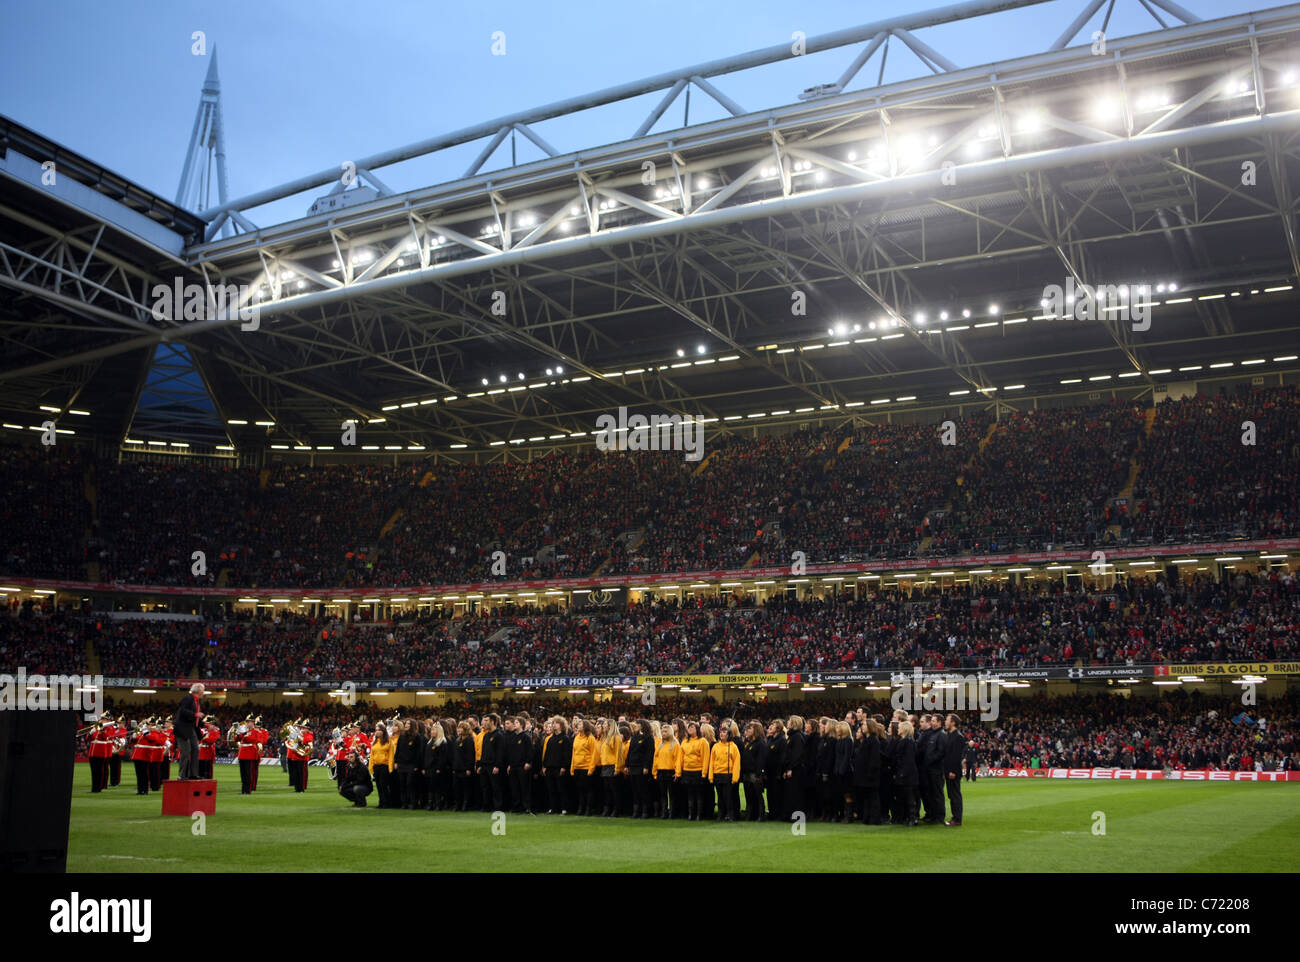 A choir singing the Welsh National Anthem at the Millennium Stadium